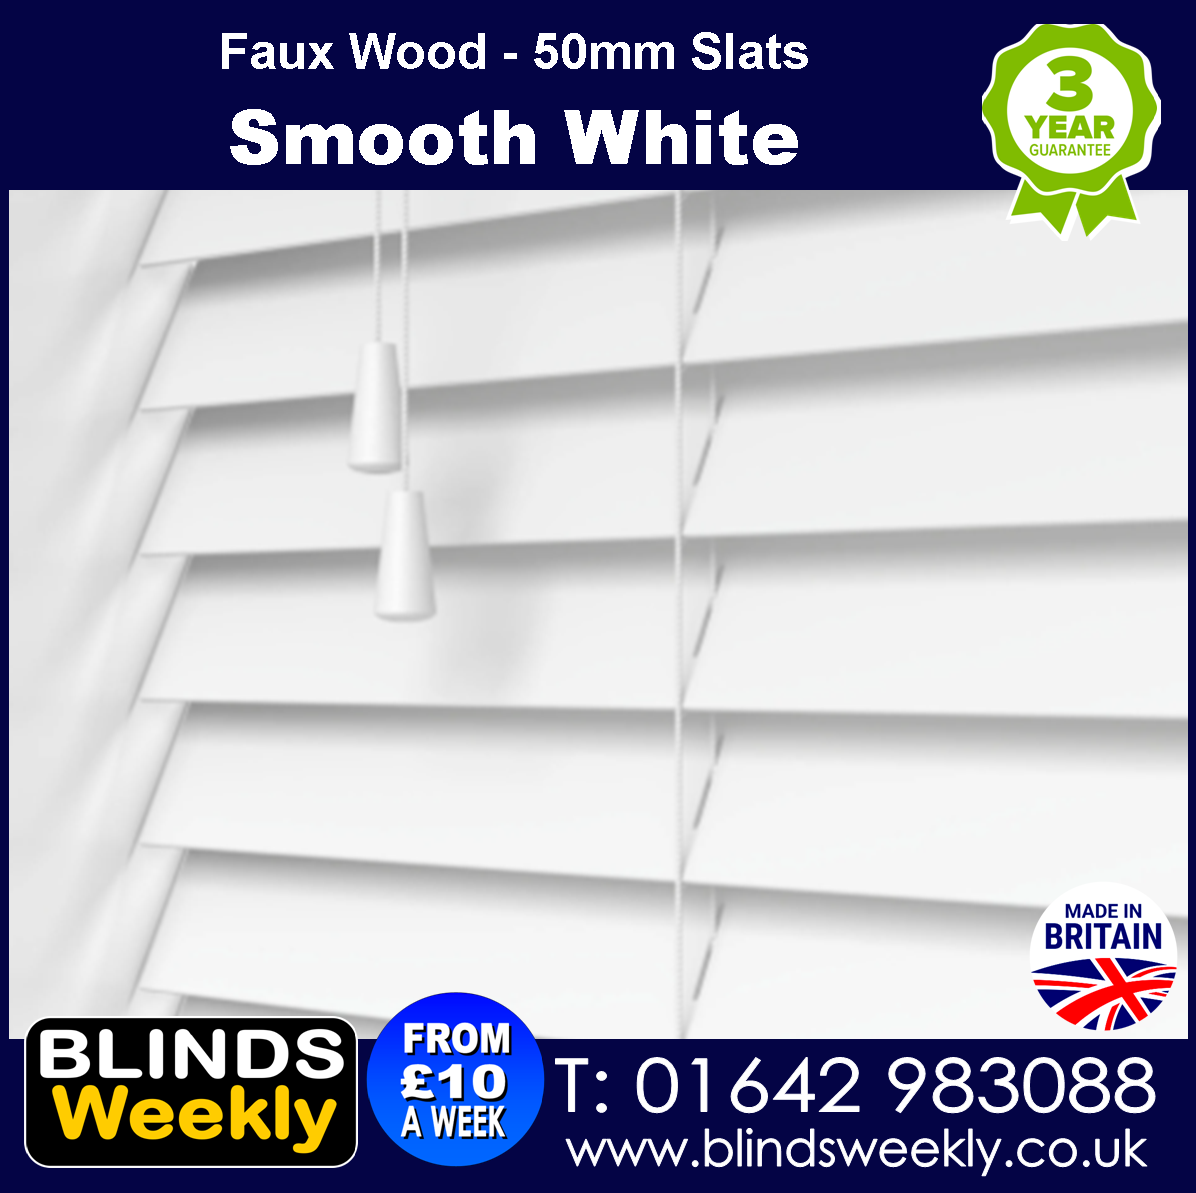 Smooth White Faux Wood Blinds 50mm Slats from Blinds Weekly